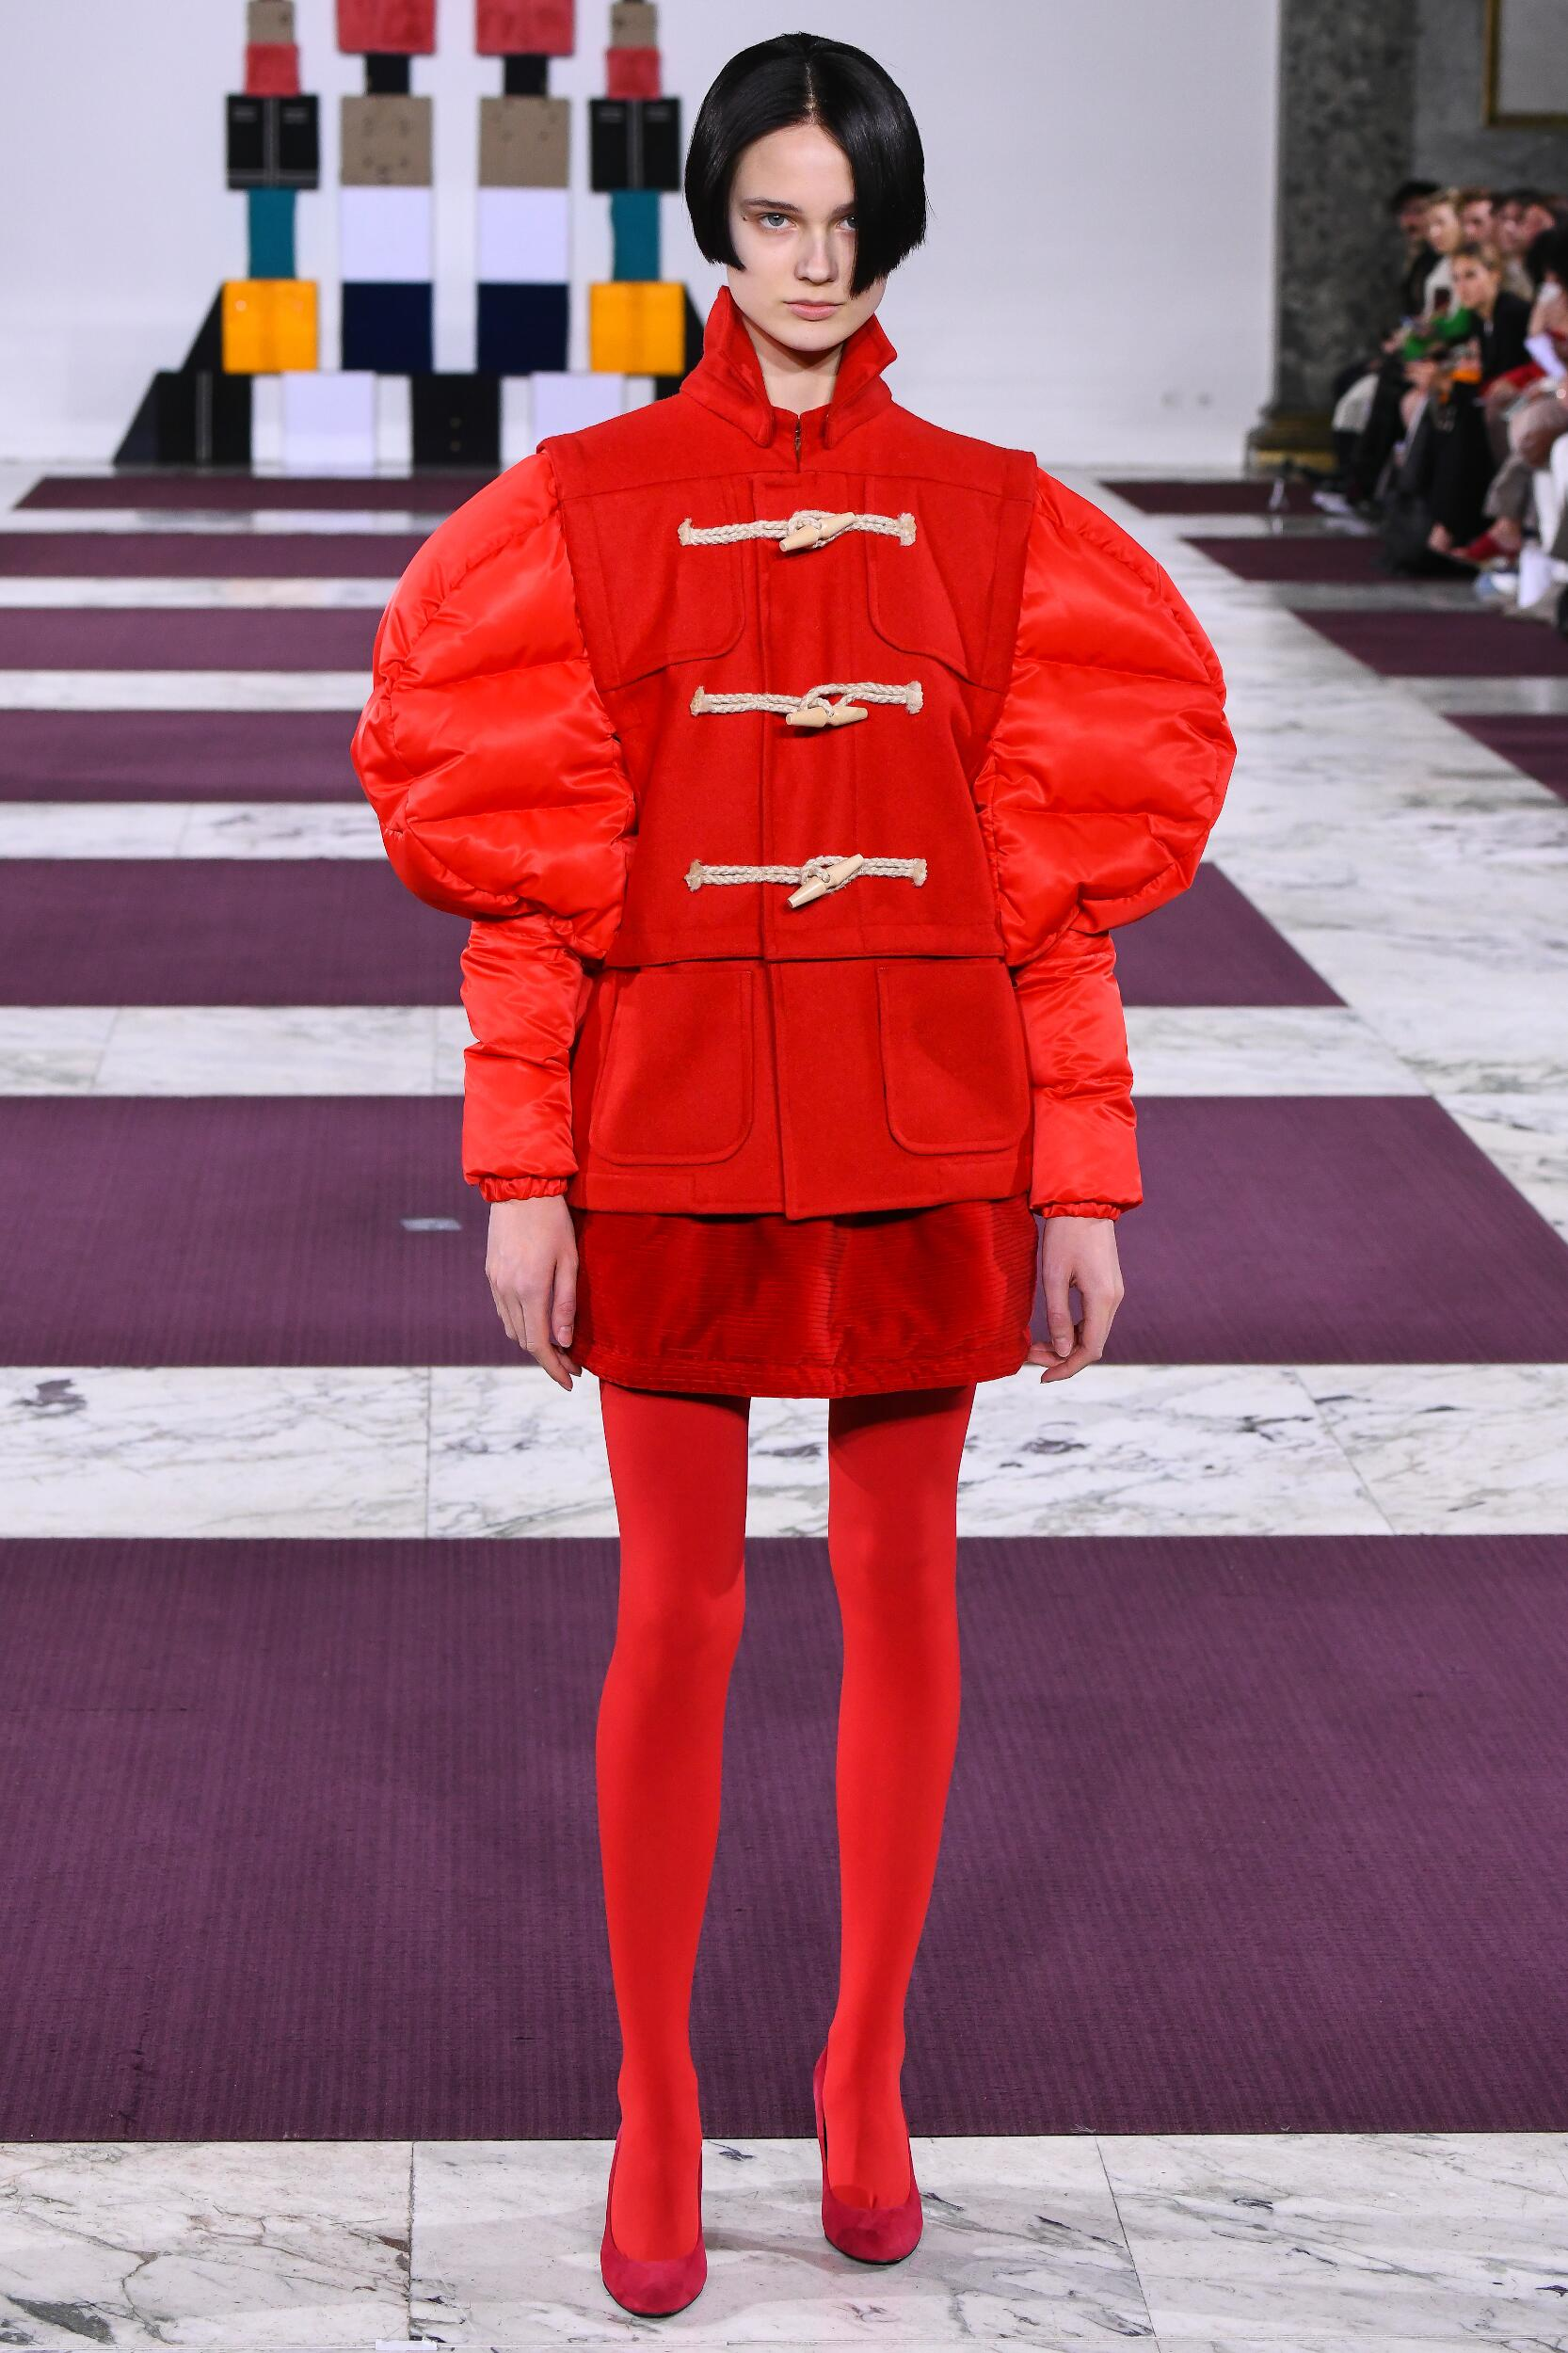 Woman FW 2020 Anrealage